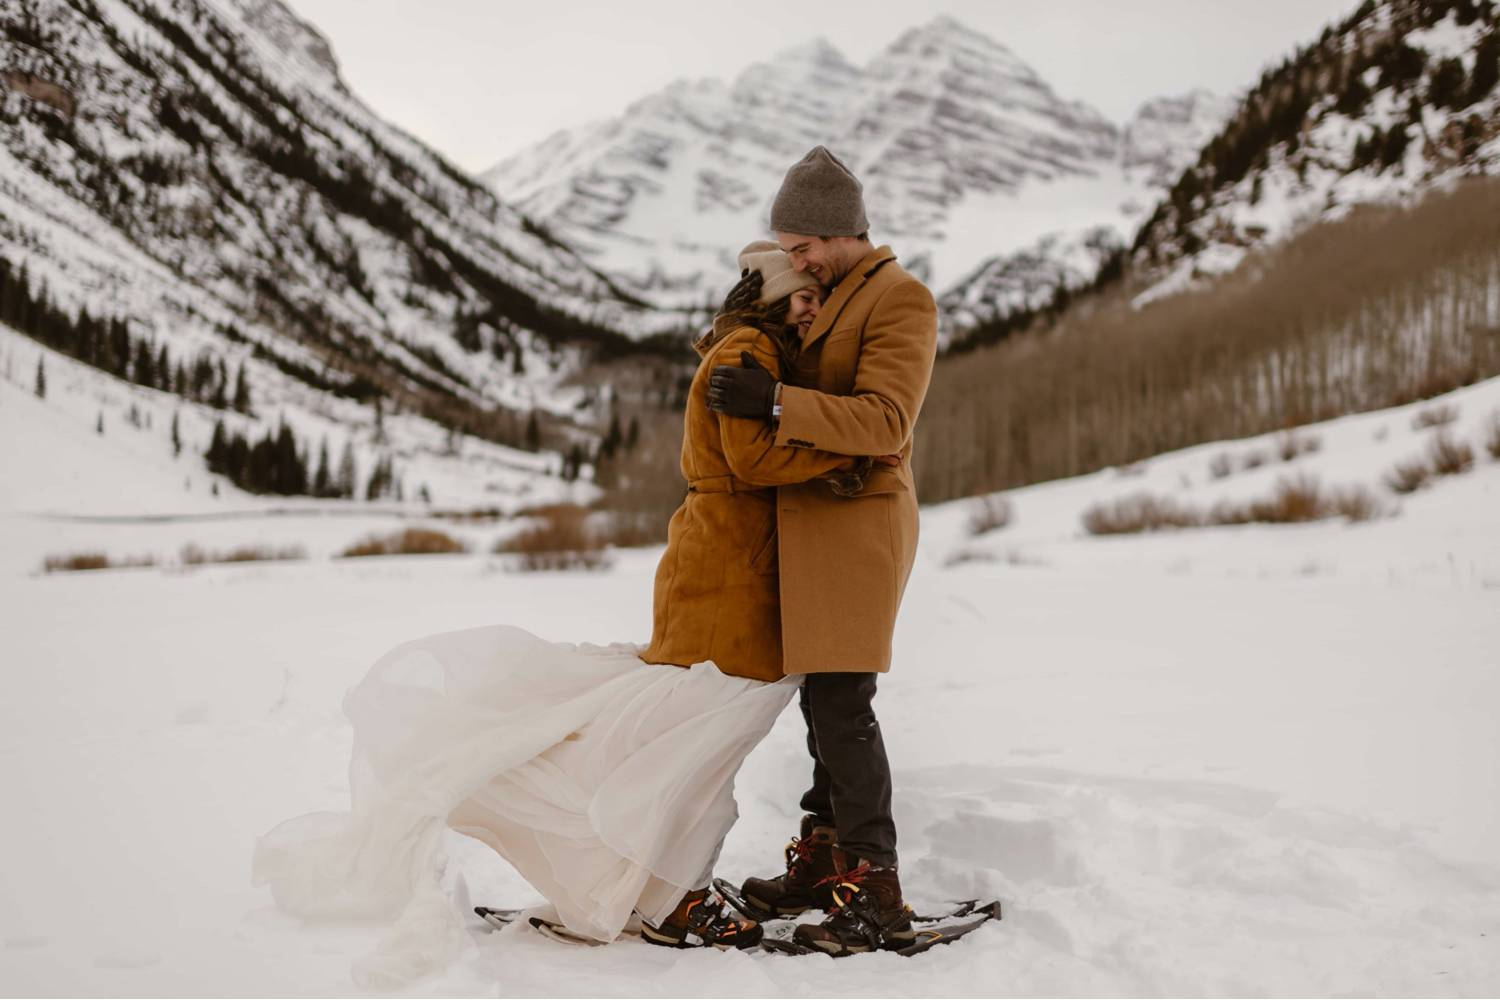 Adventure Instead's photo of newlyweds hugging in the snow. They're both wearing snow shoes.